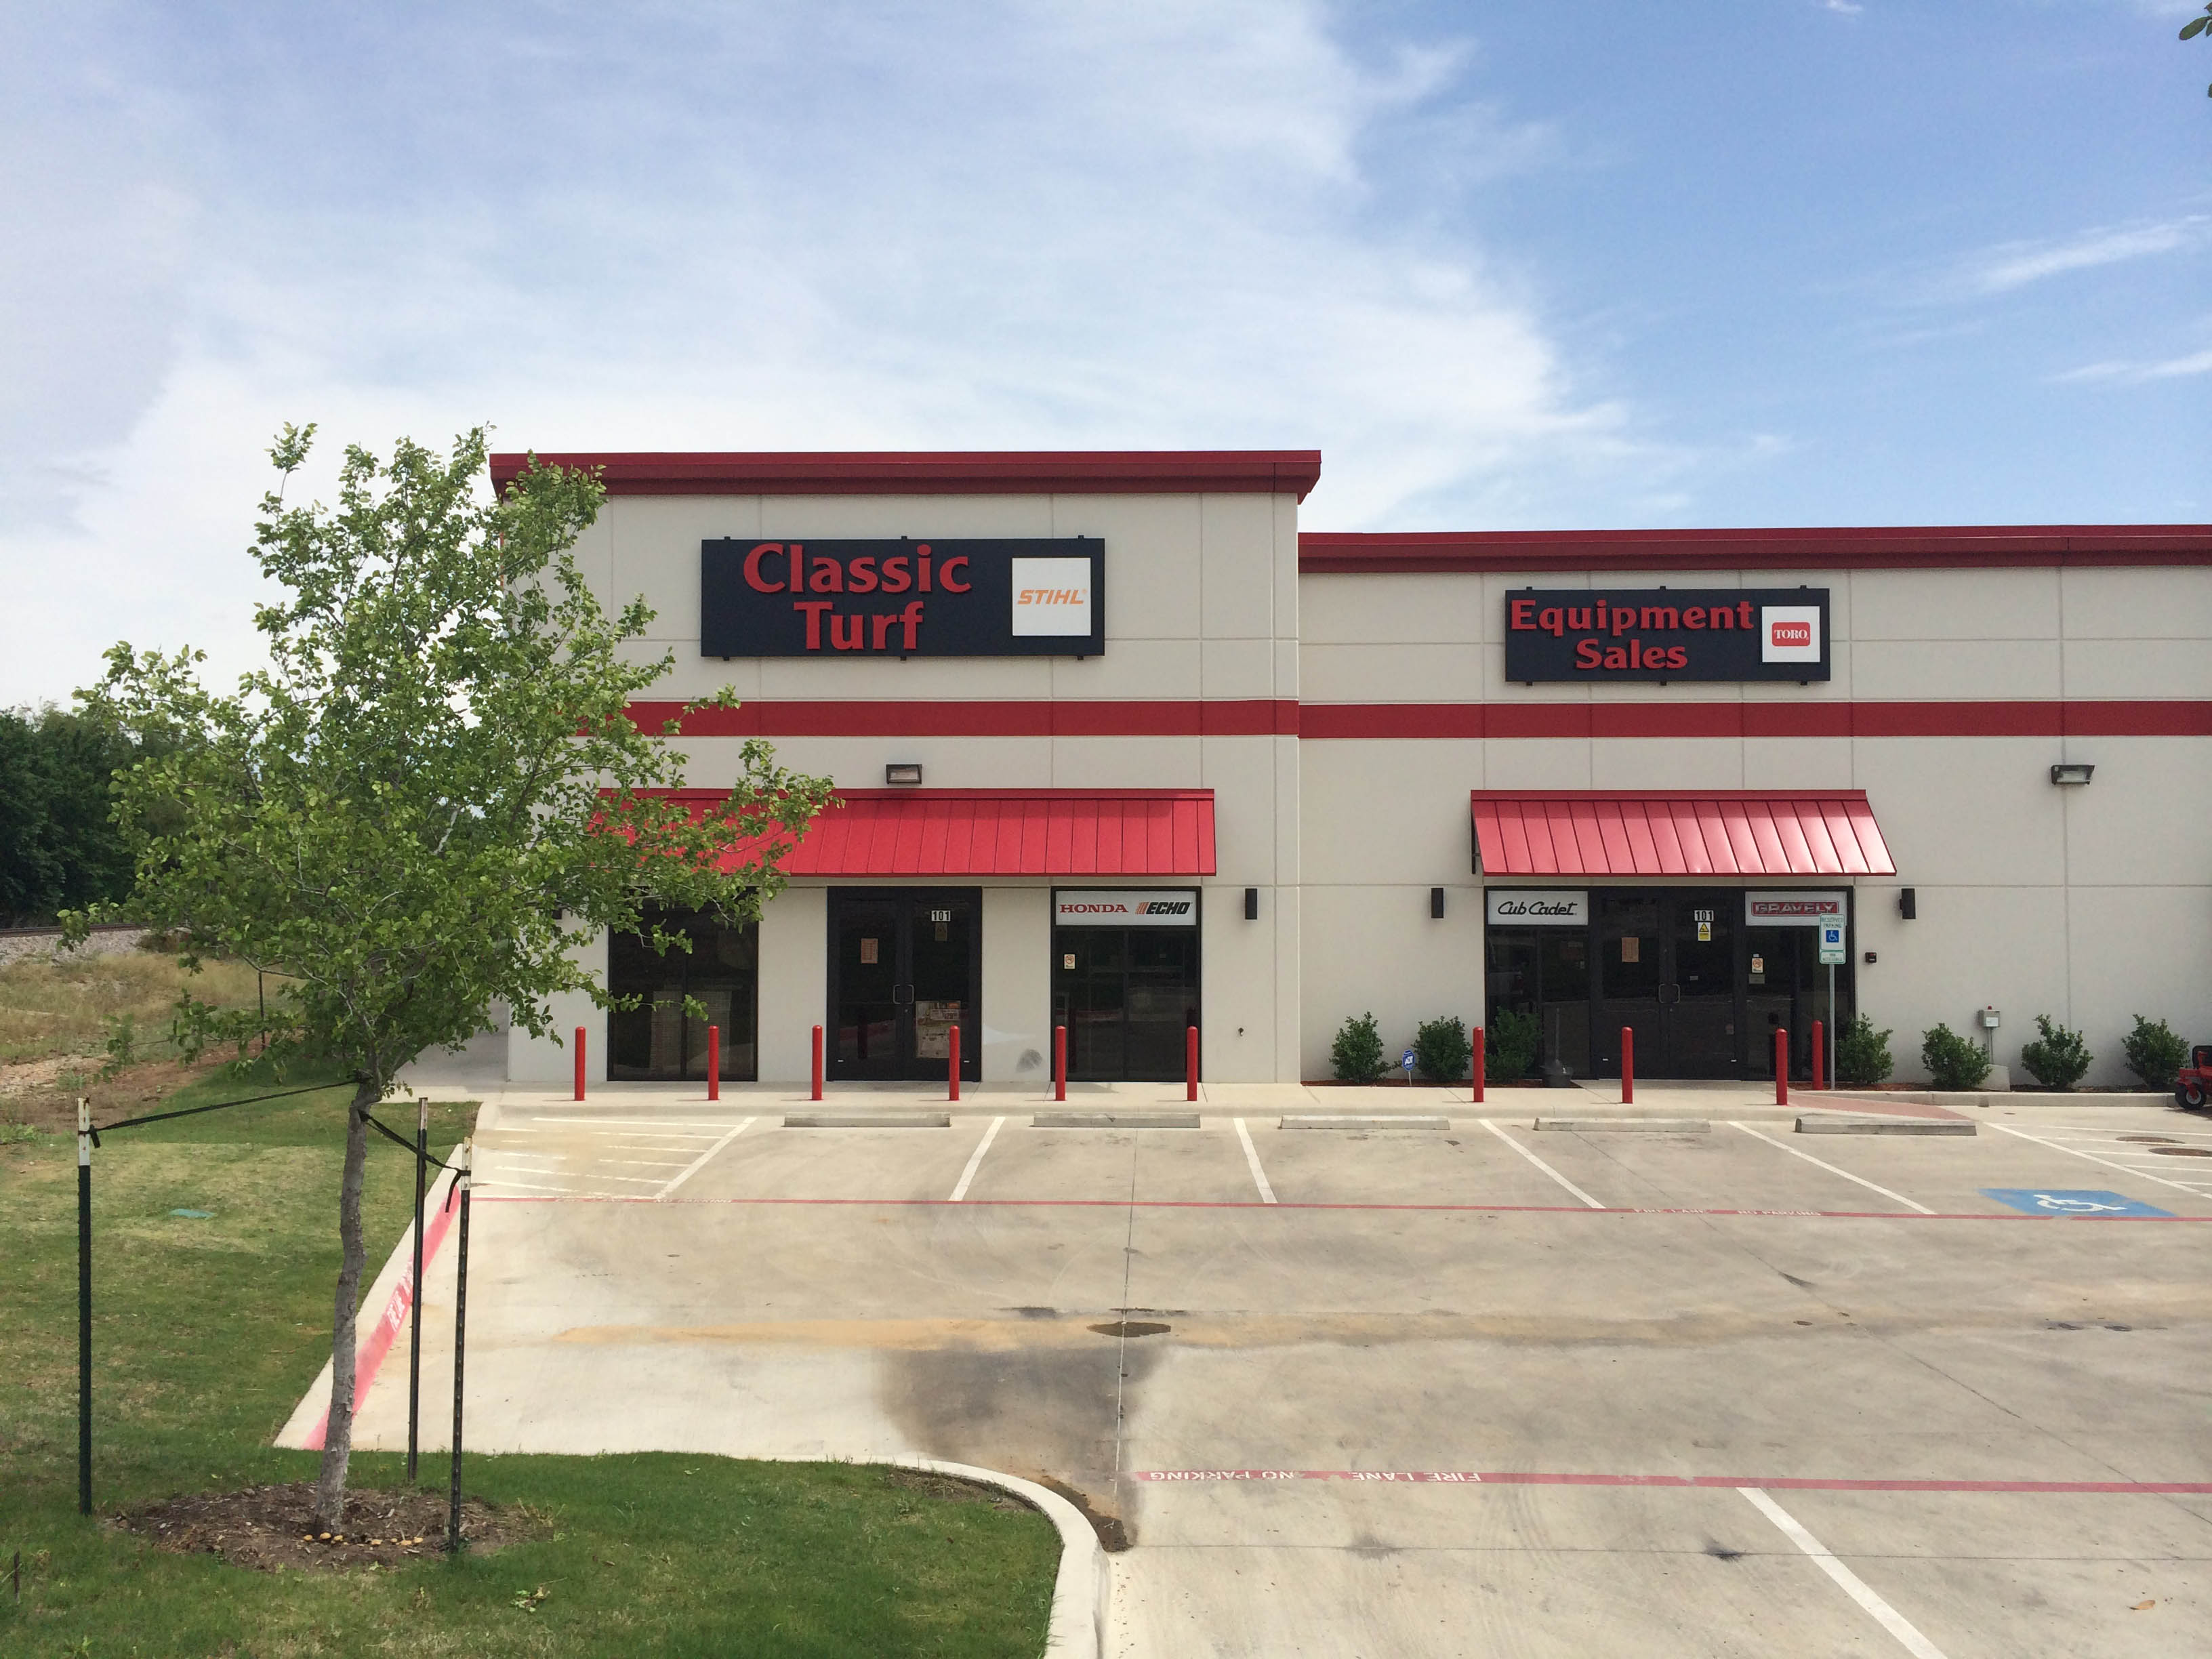 Classic Turf Commercial Construction Exterior Finished